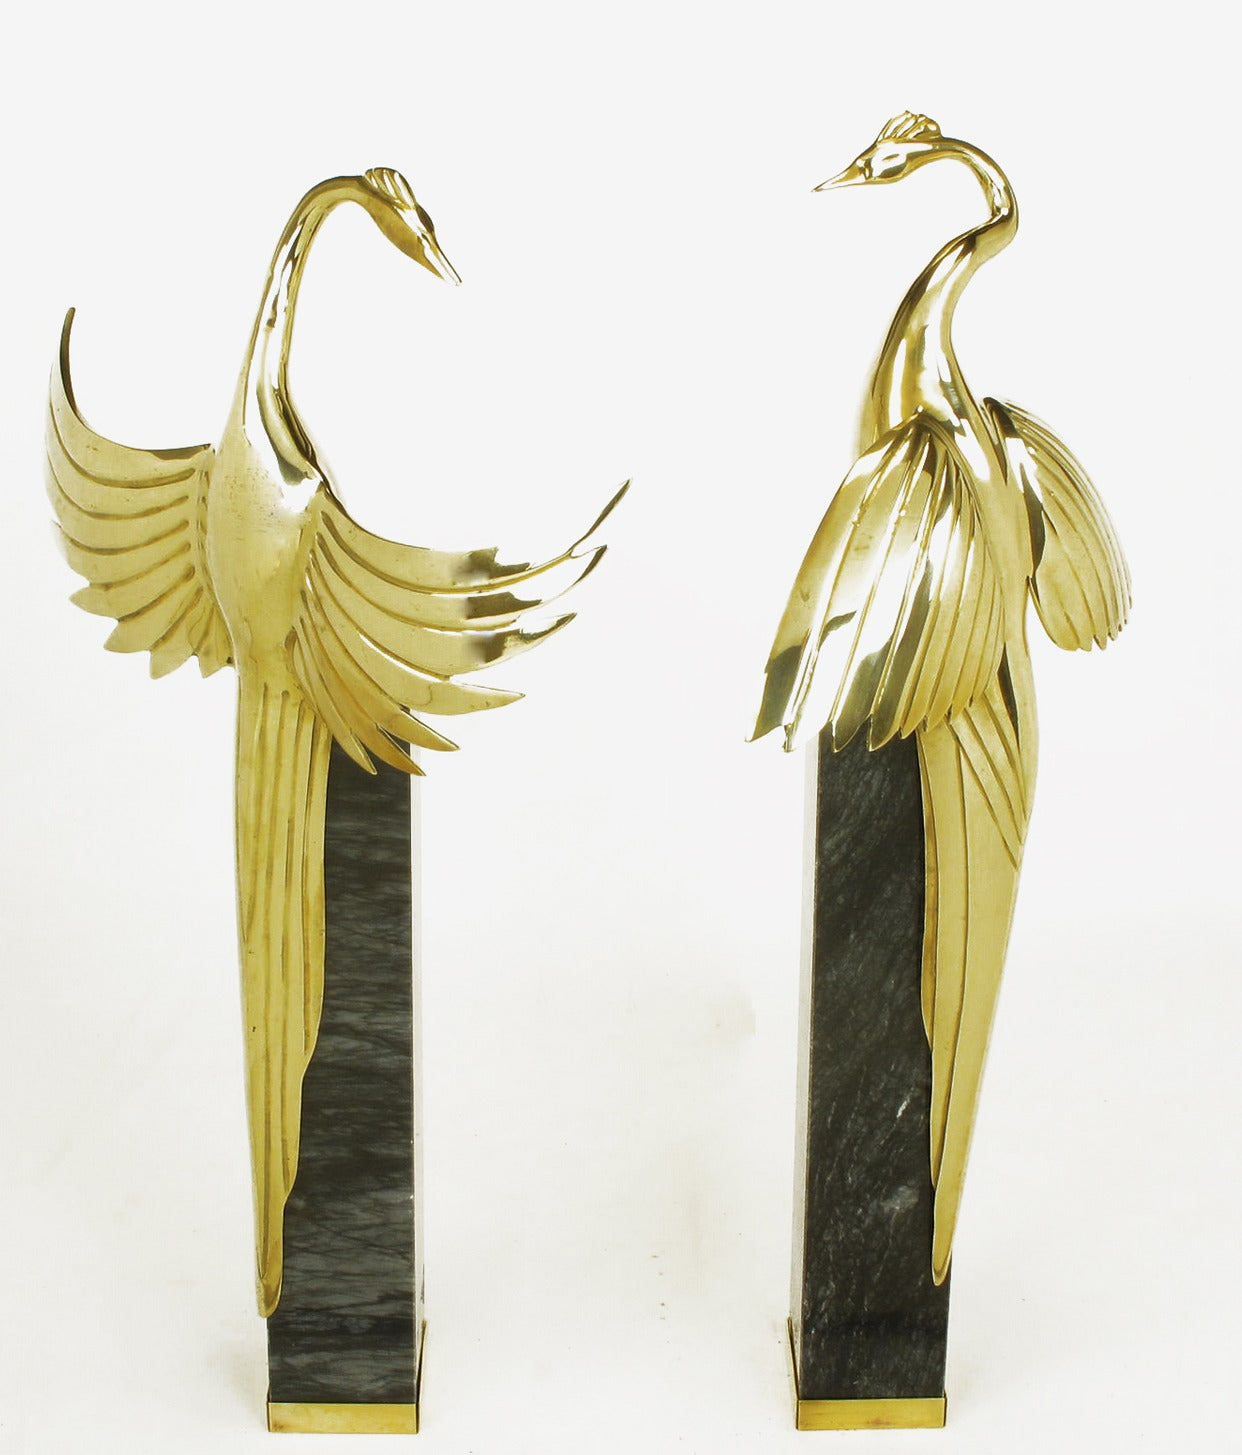 Pair of Marble Pedestal and Brass Crane Sculptures For Sale 5